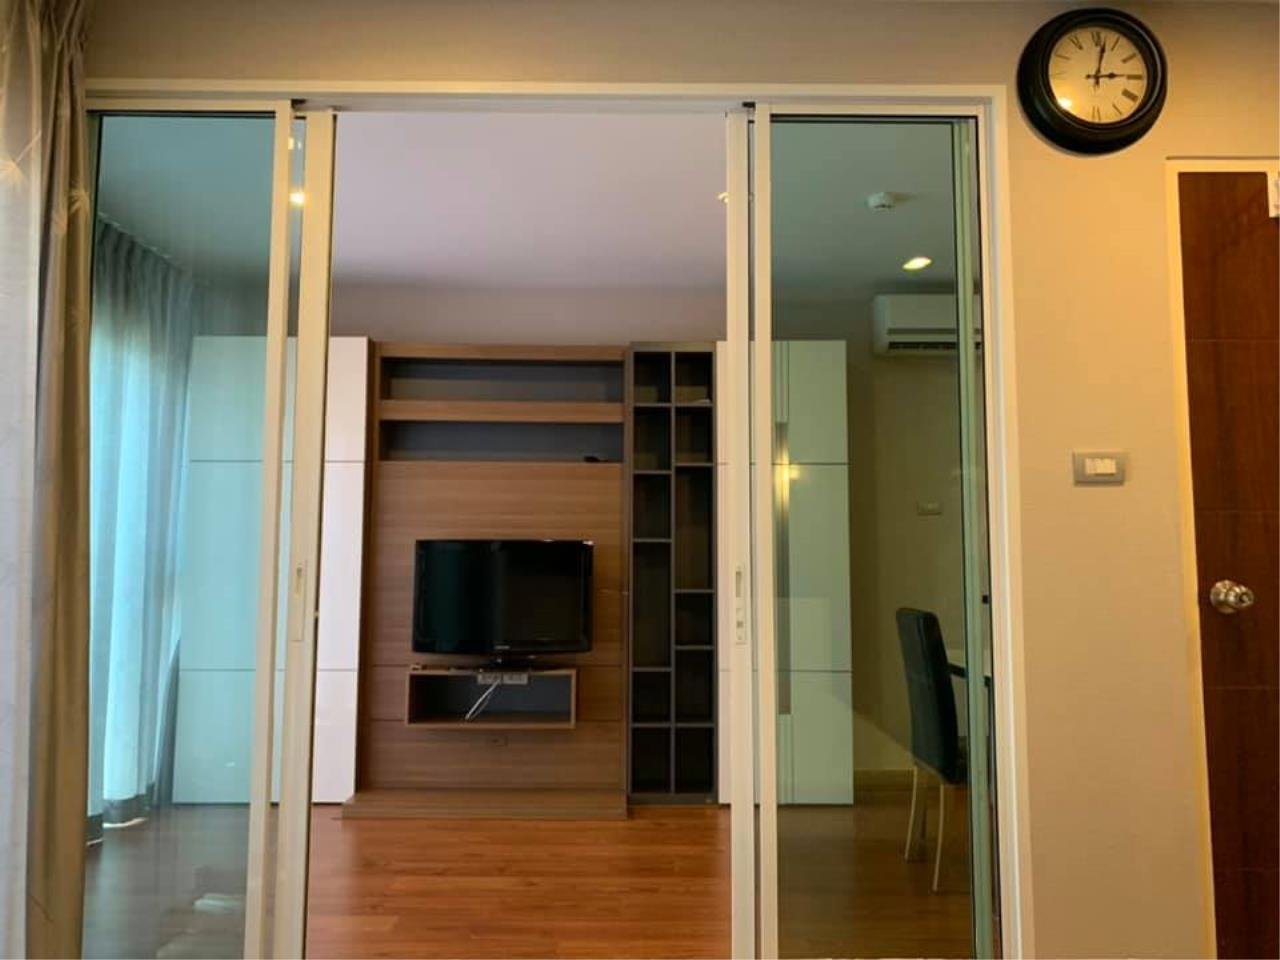 Agent Thawanrat Agency's Condo for rental TOURMALINE GOLD SATHORN – TAKSIN Near BTS.Krung Thon Buri. 1 bedroom,1 bathroom. size 40 sqm.Floor 10 th. fully furnished Ready to move in 9